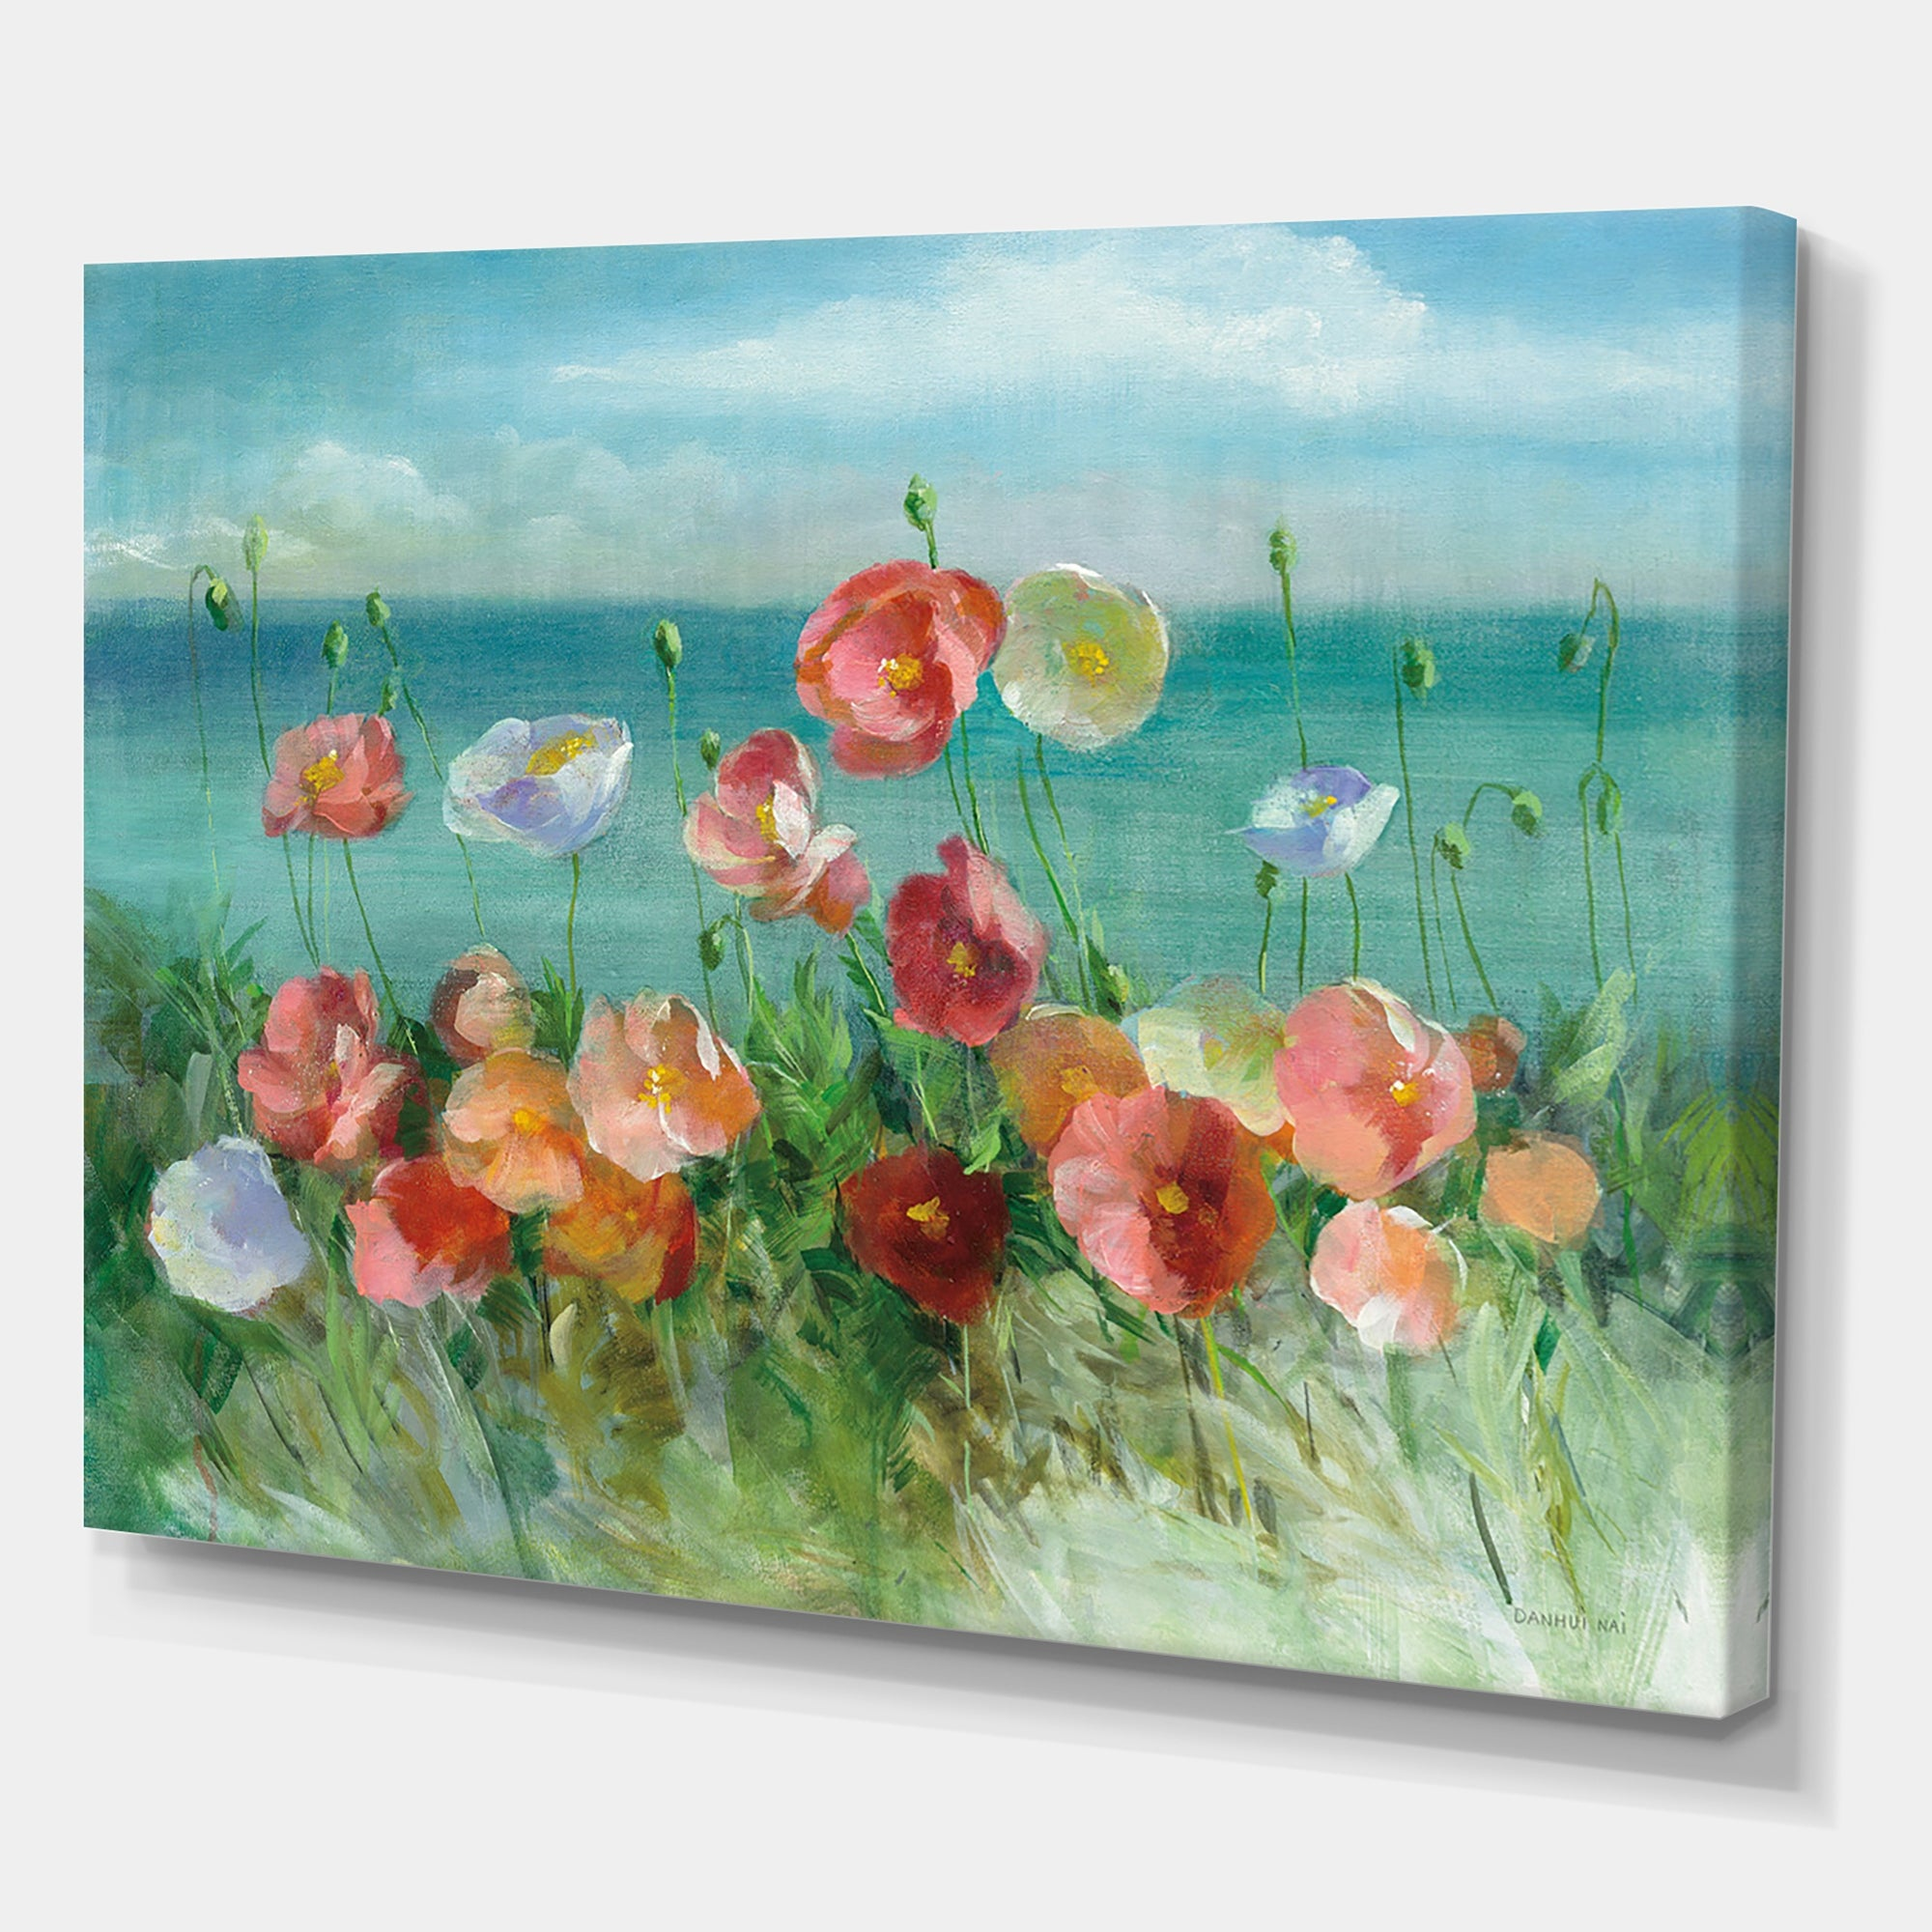 Vintage 24 by 36 rug canvas POPPIES